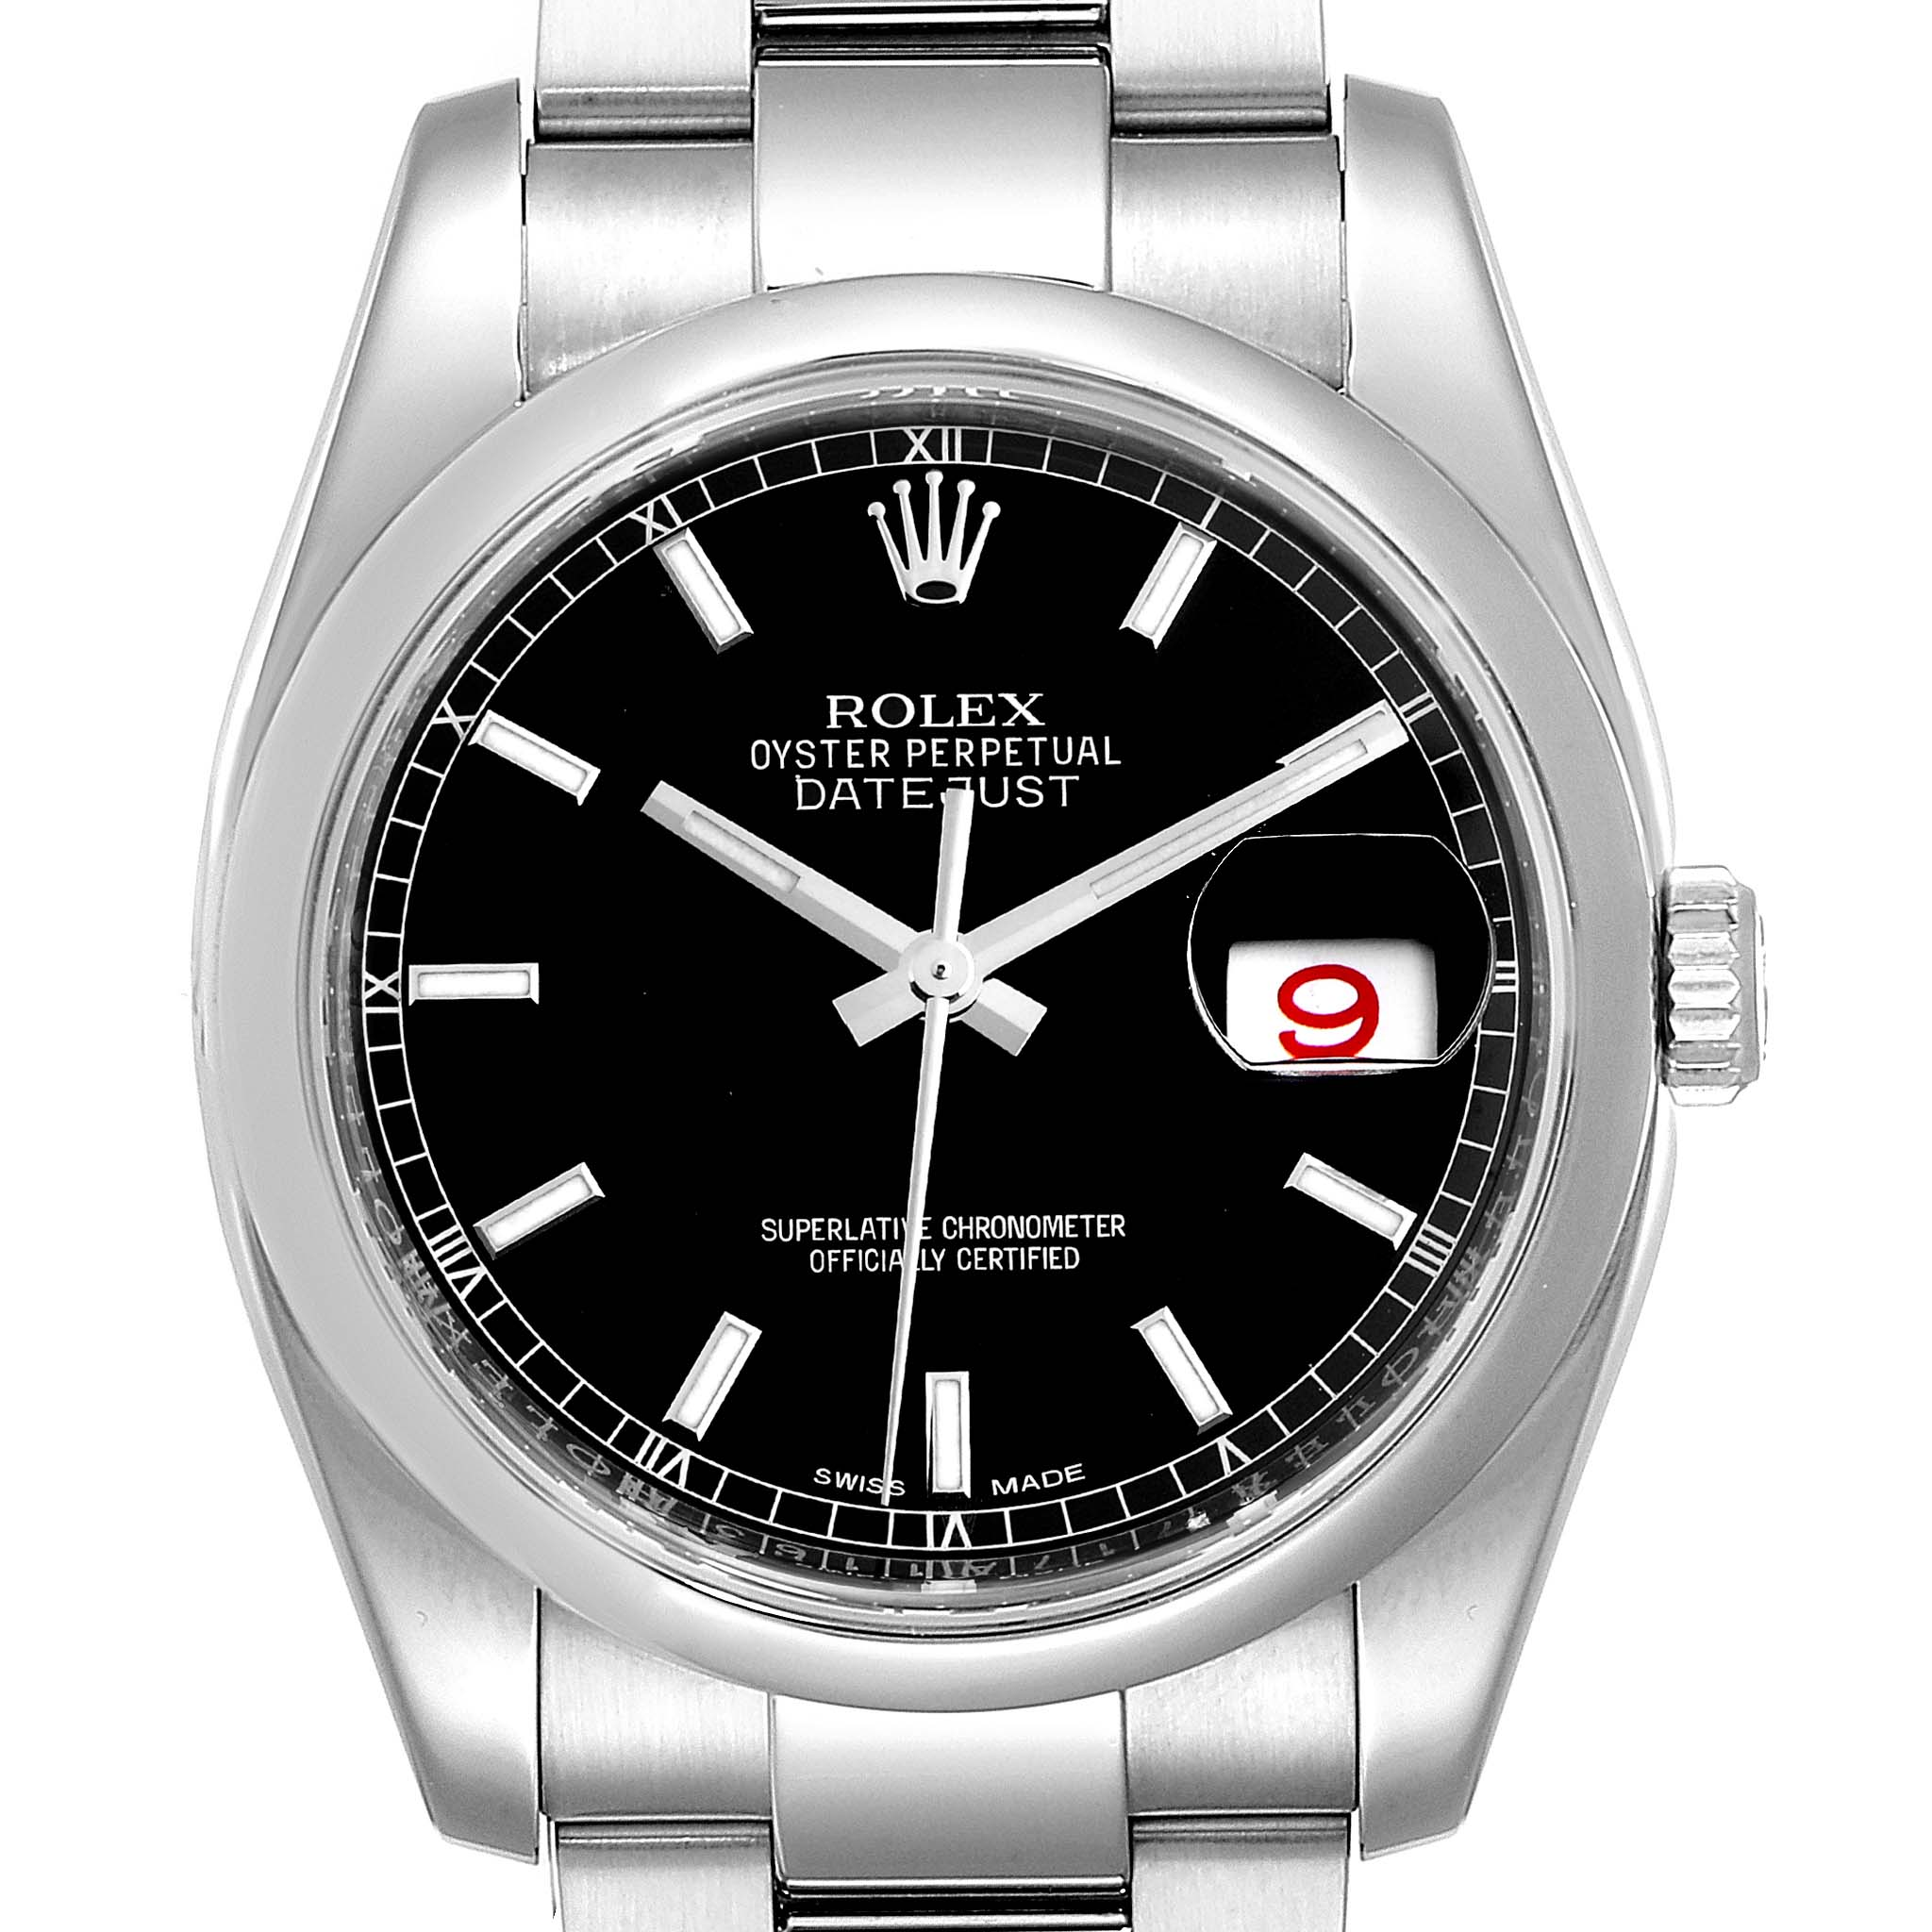 Rolex Datejust Black Baton Dial Steel Mens Watch 116200 Box Card